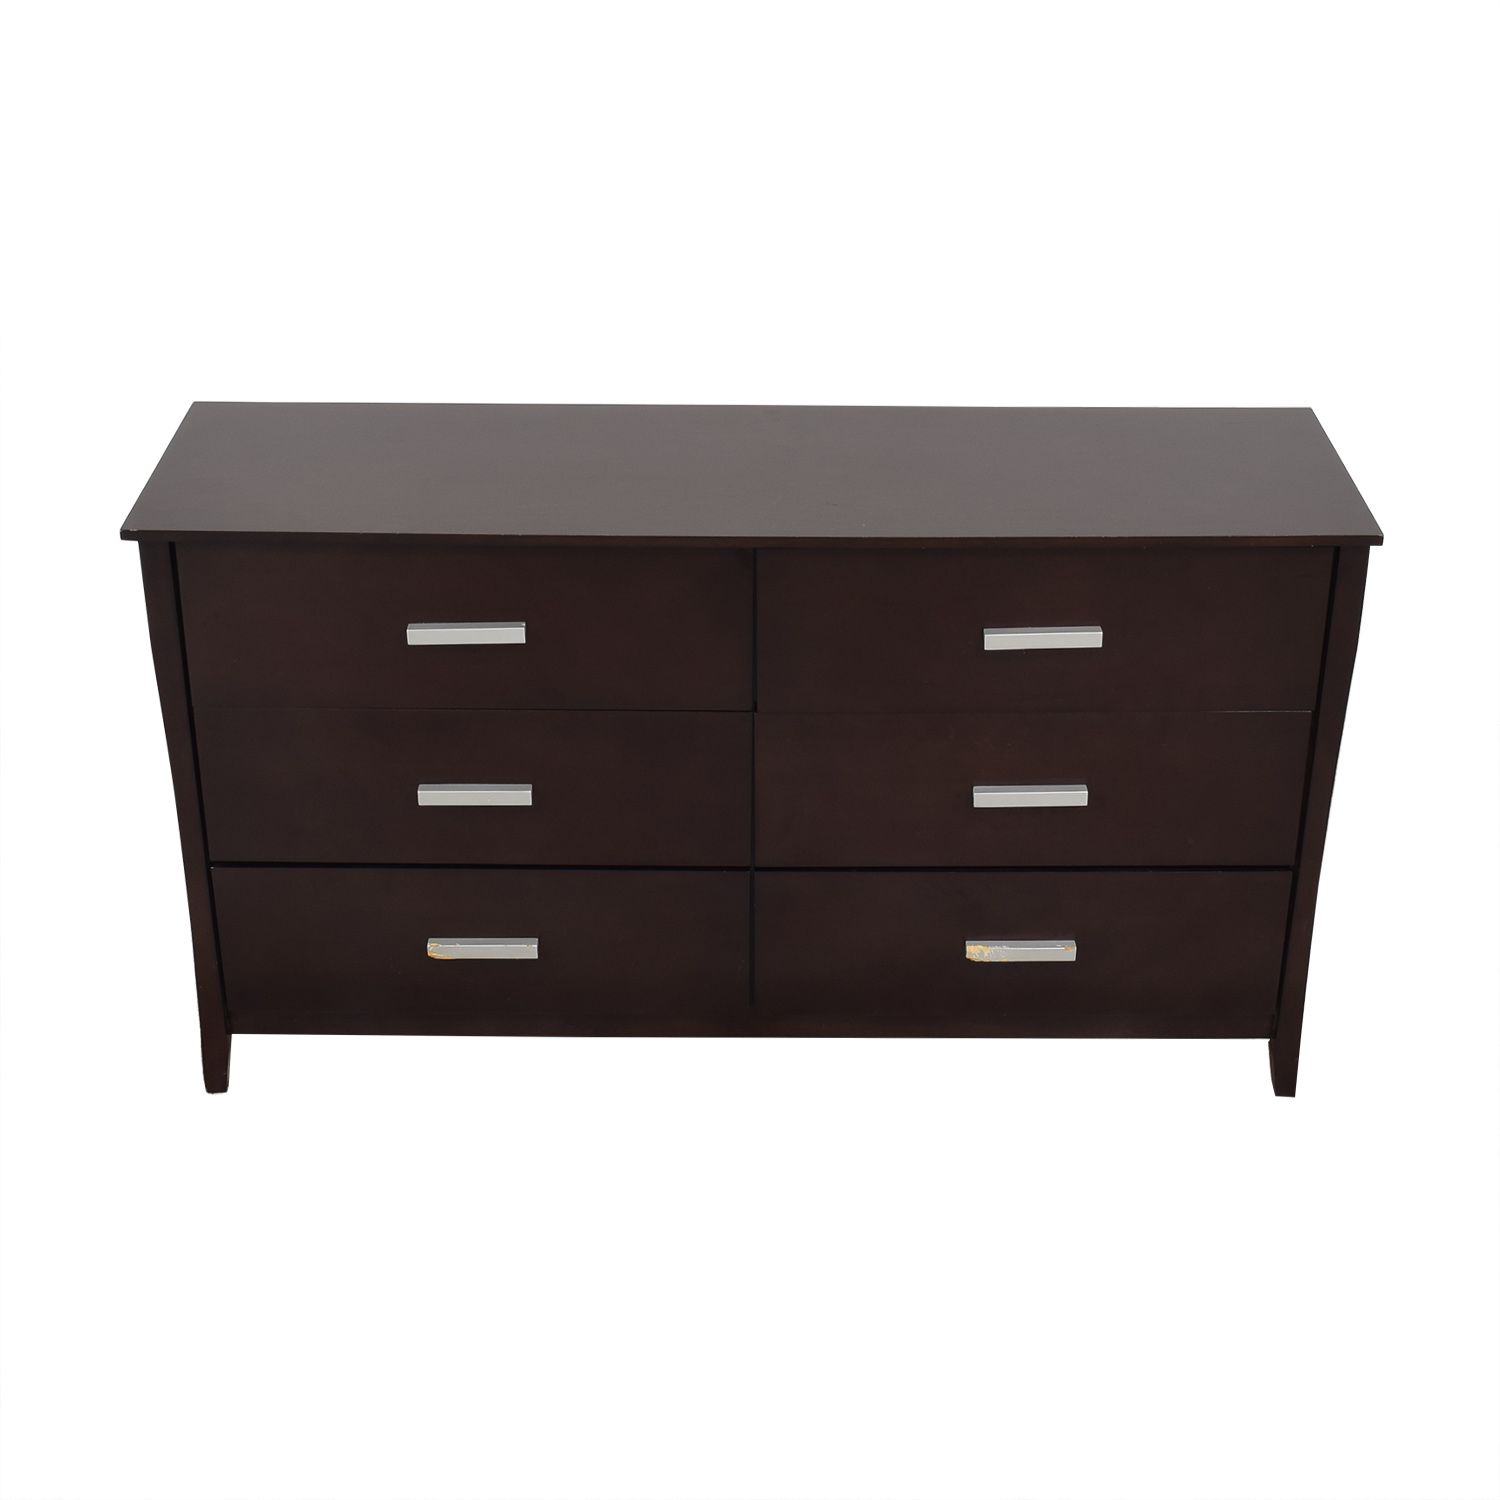 Coaster Fine Furniture Coaster Fine Furniture Six Drawer Dresser coupon